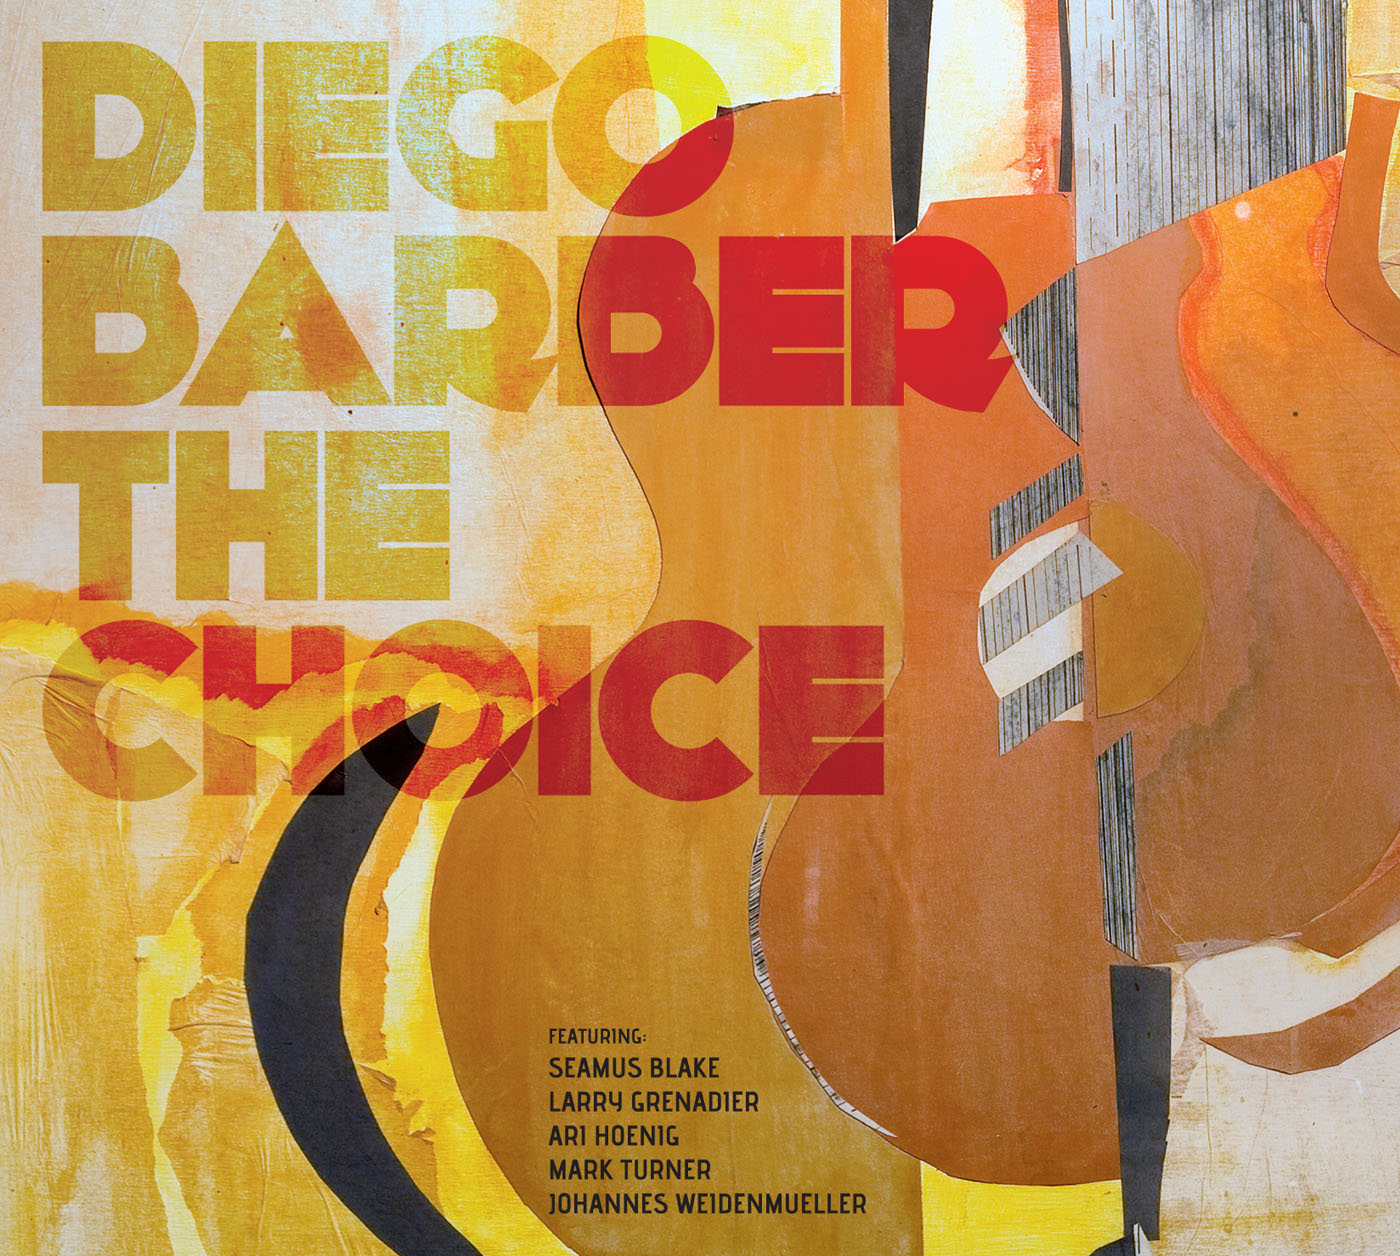 The Choice by Diego Barber cover